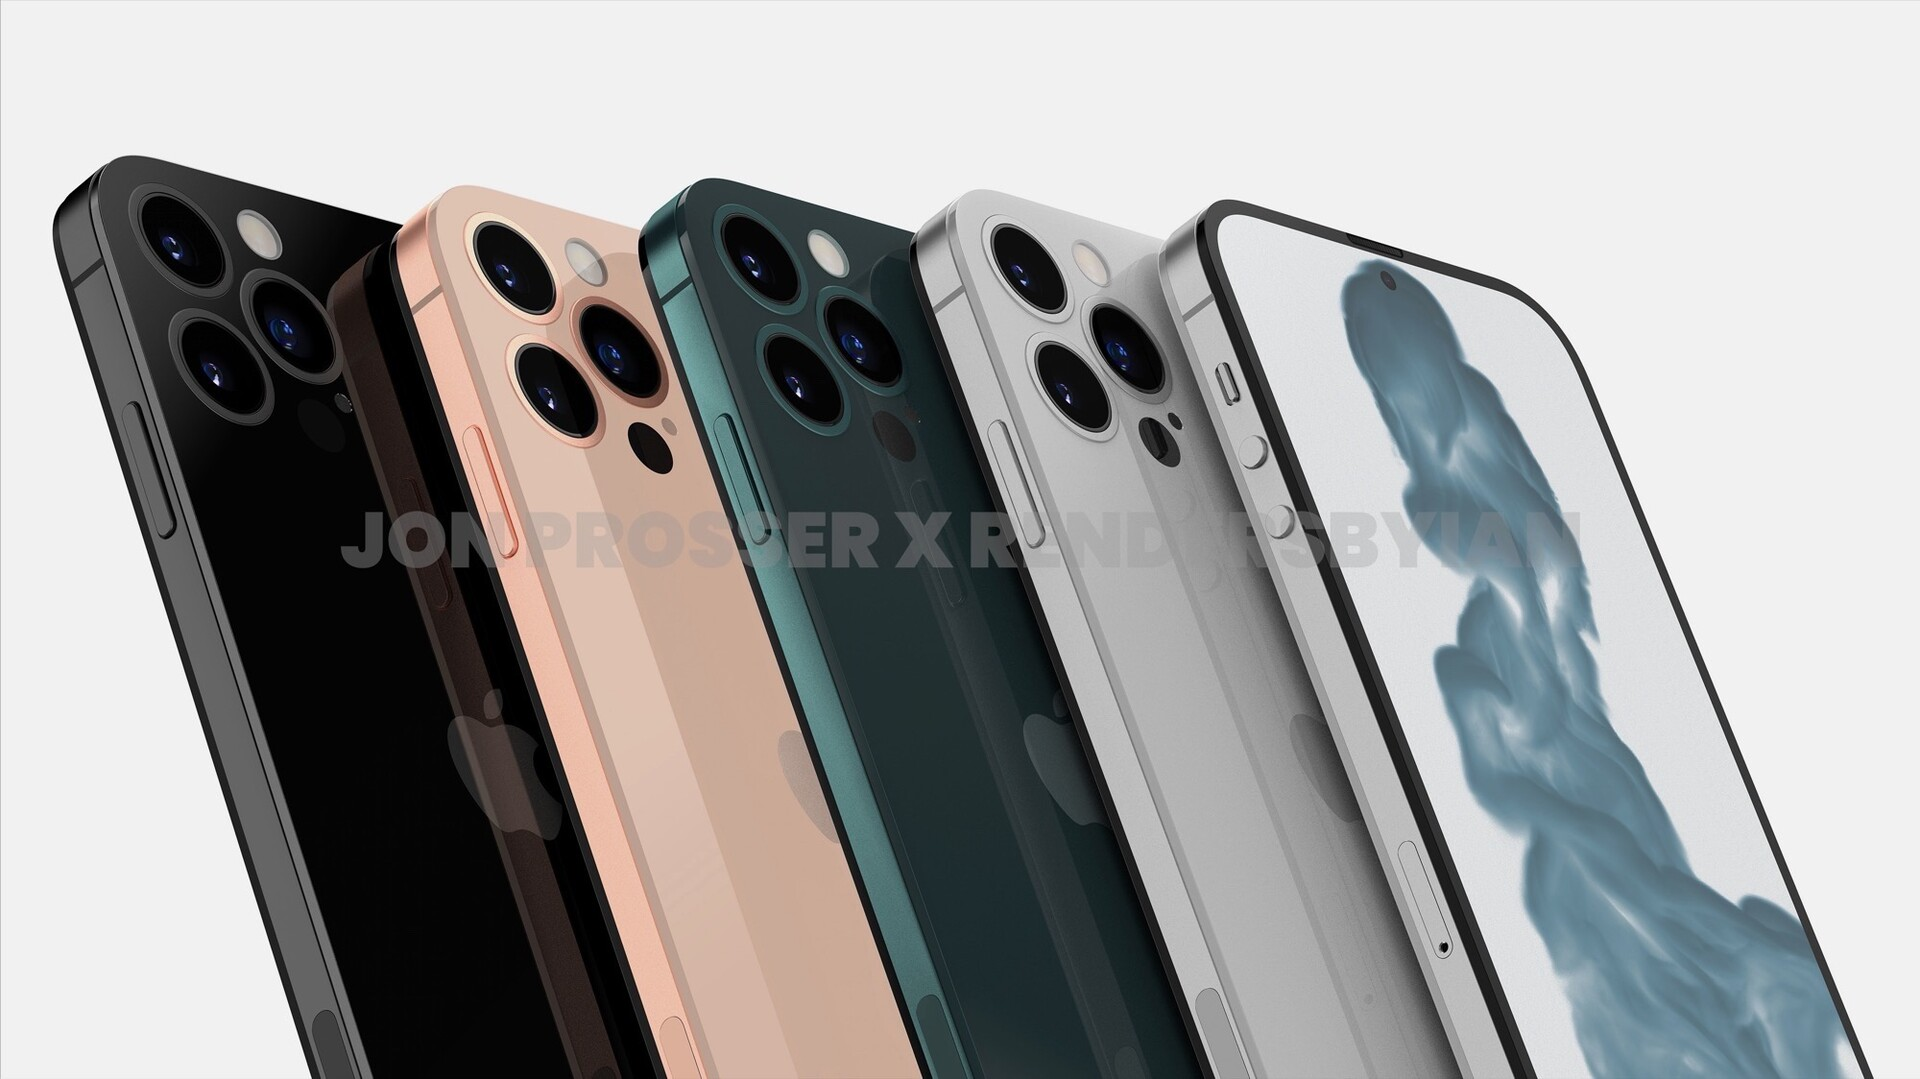 Leaked Apple iPhone 14 renders showcase major design changes from the iPhone  12 and iPhone 13 series - NotebookCheck.net News